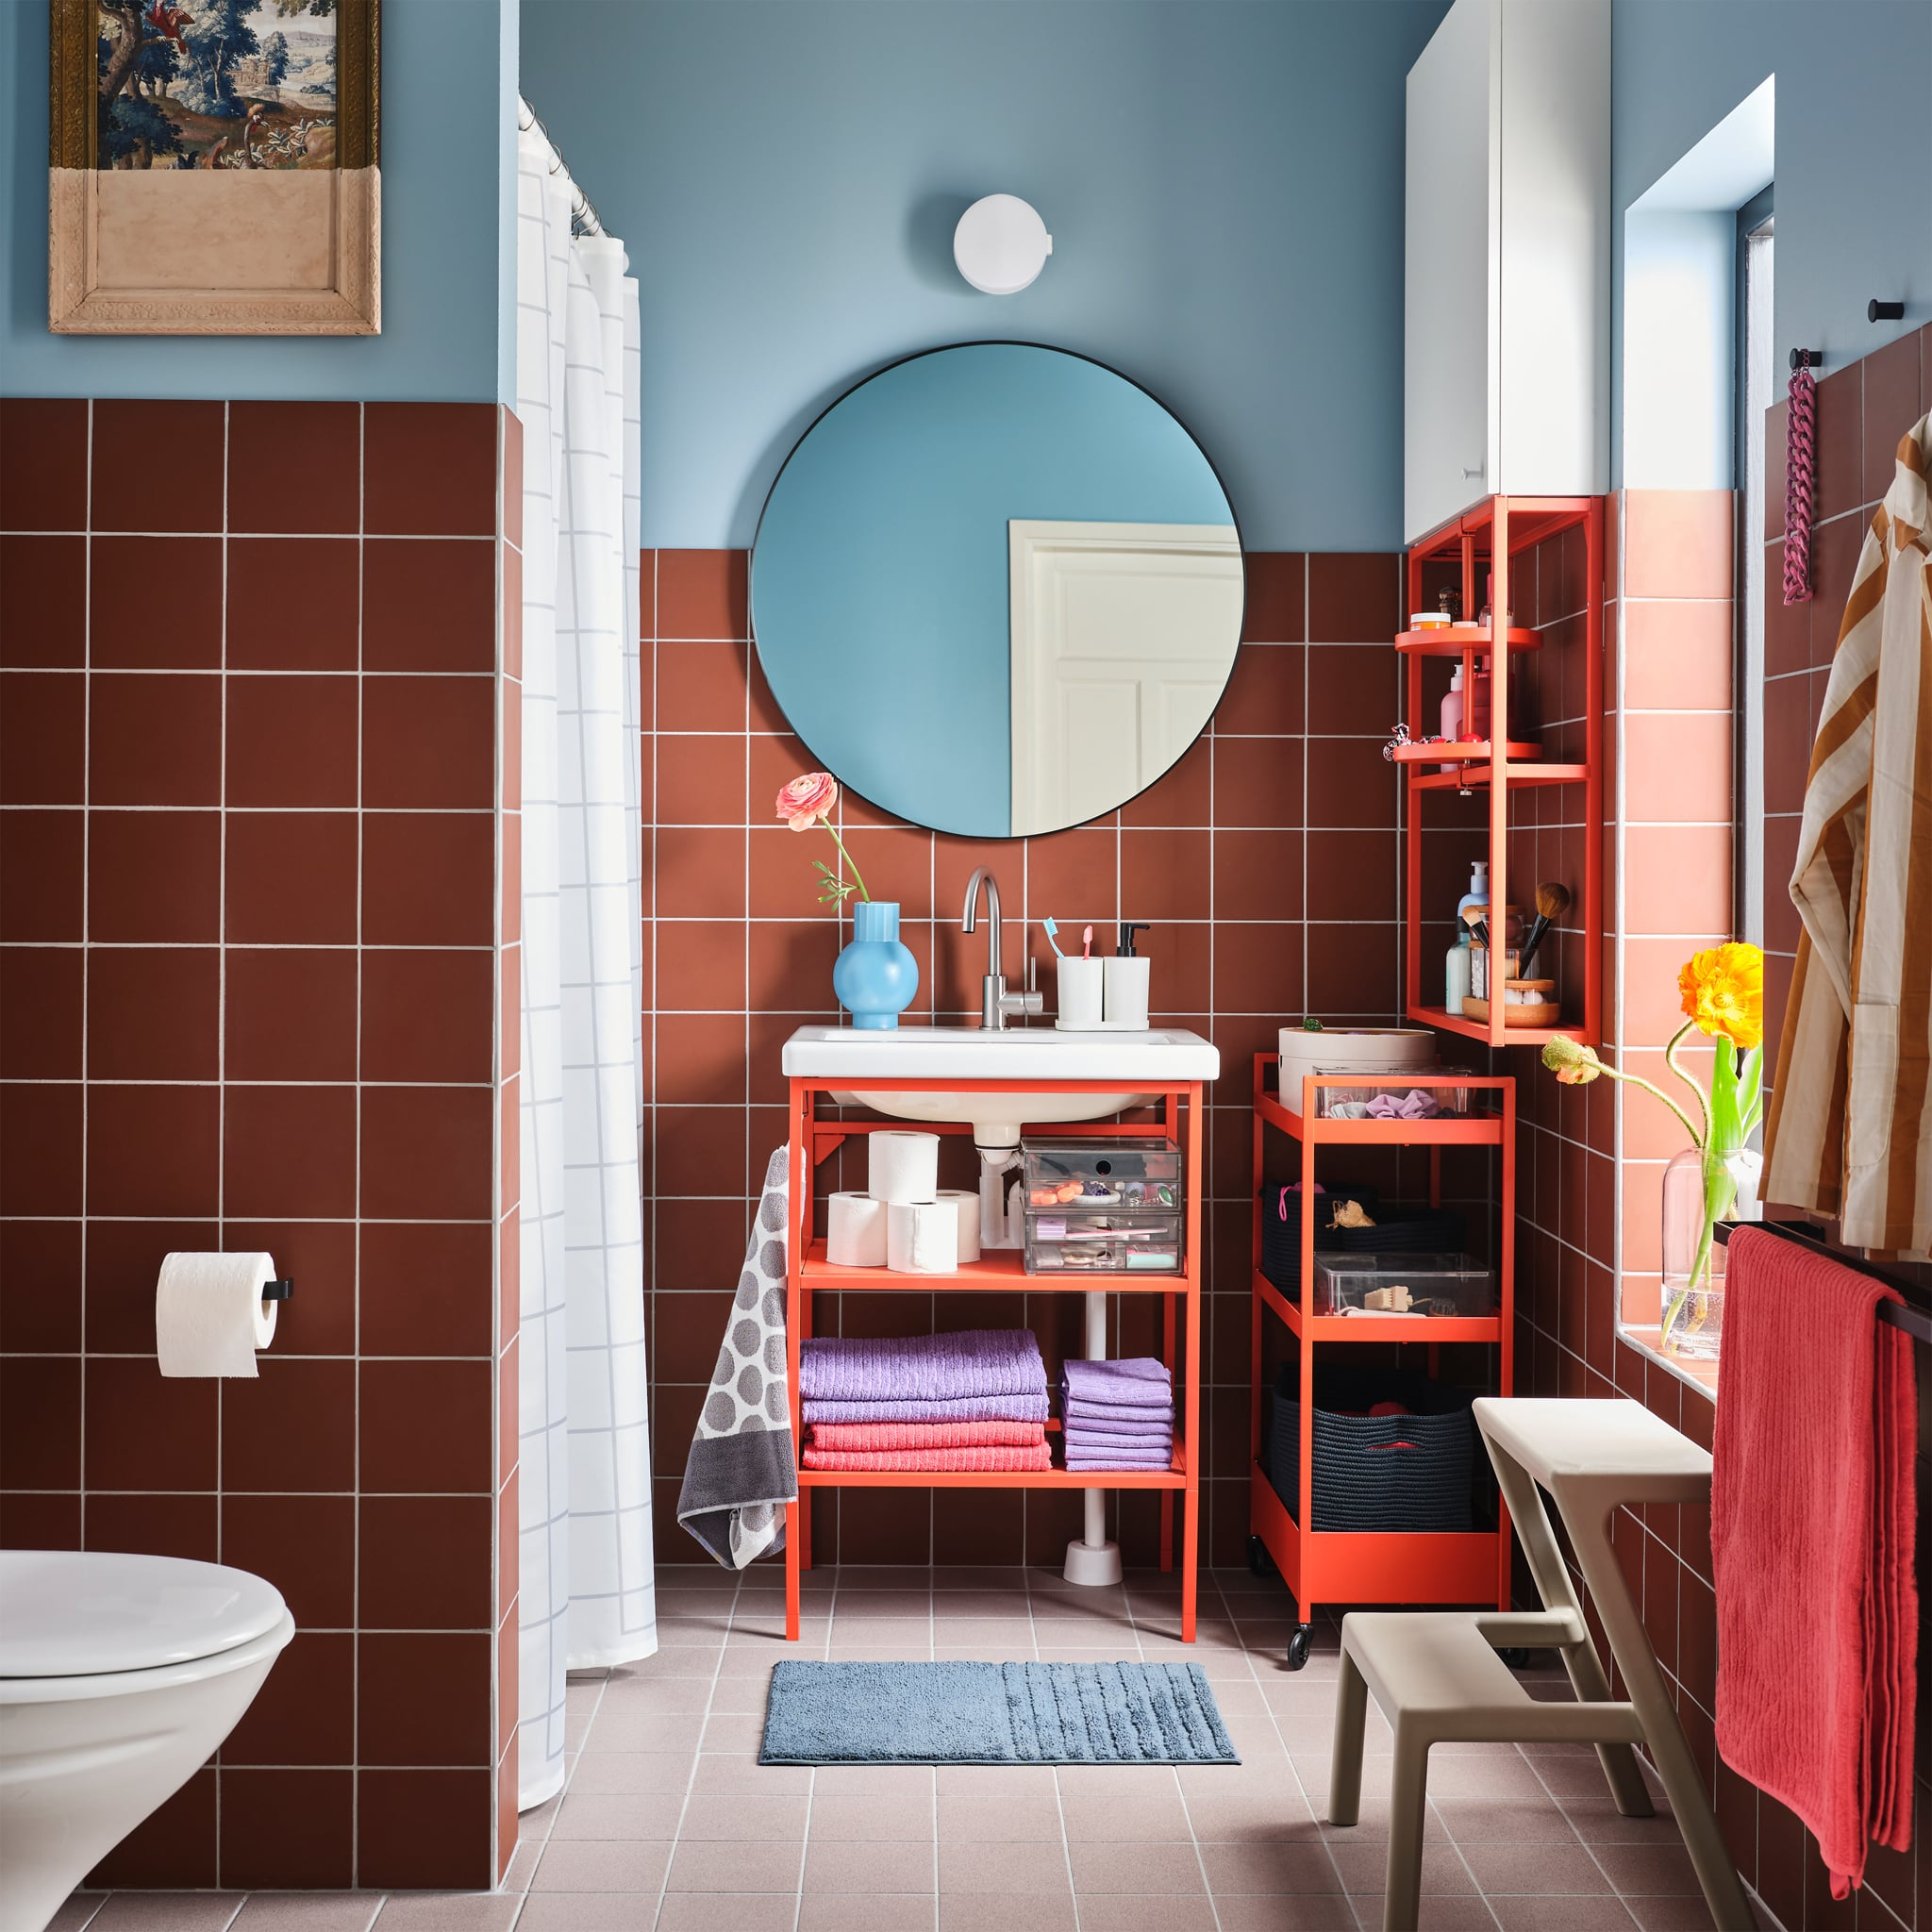 Bathroom with bathroom furniture and a trolley in red-orange, a round mirror, light red/purple towels and a beige step stool.